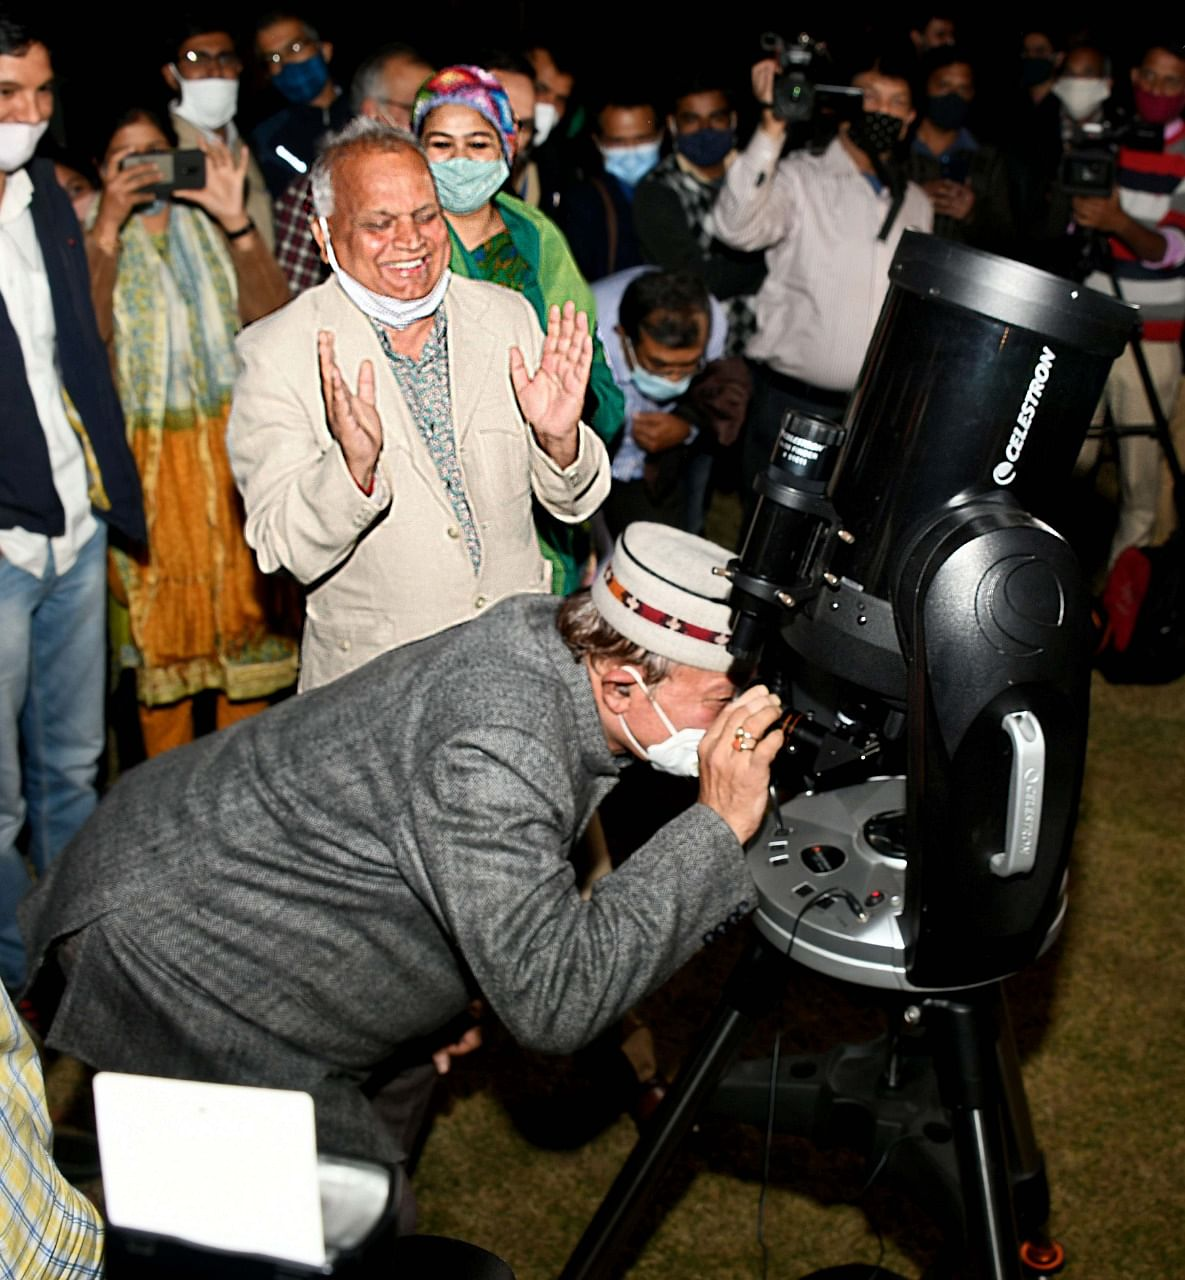 Art and Culture minister Dr. B.D. Kalla looking at the night sky through the telescope. To this left, chief secretary Niranjan Arya.